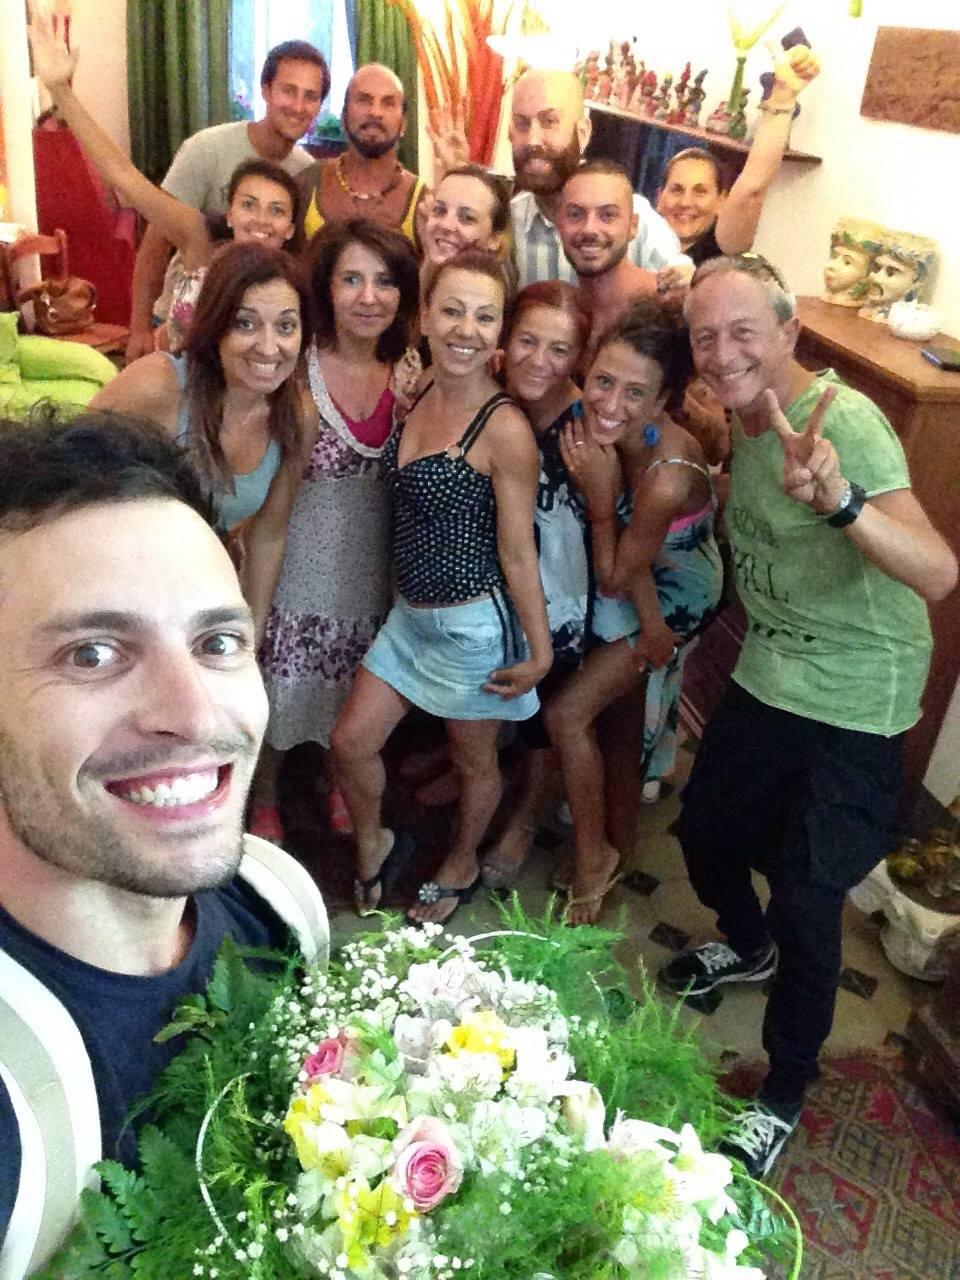 rock church in italy happy together after cell group smiles peace